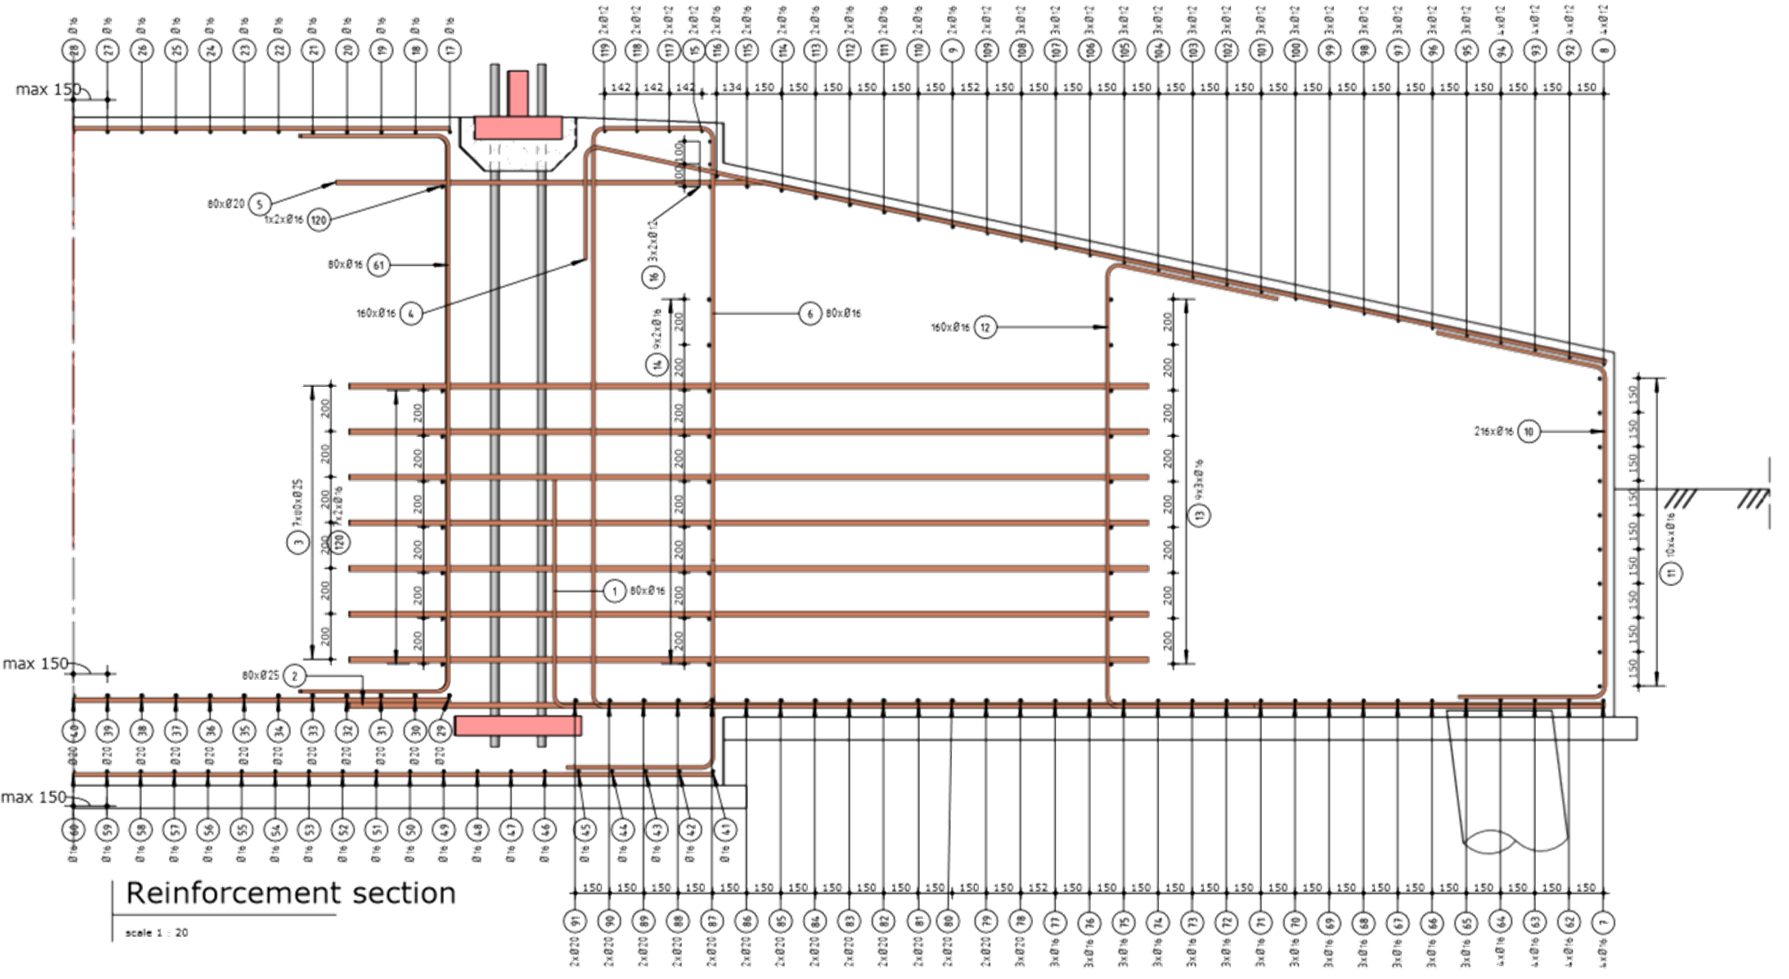 Rebar Detailing School : Rebar modelling in revit with dynamo use case by abt